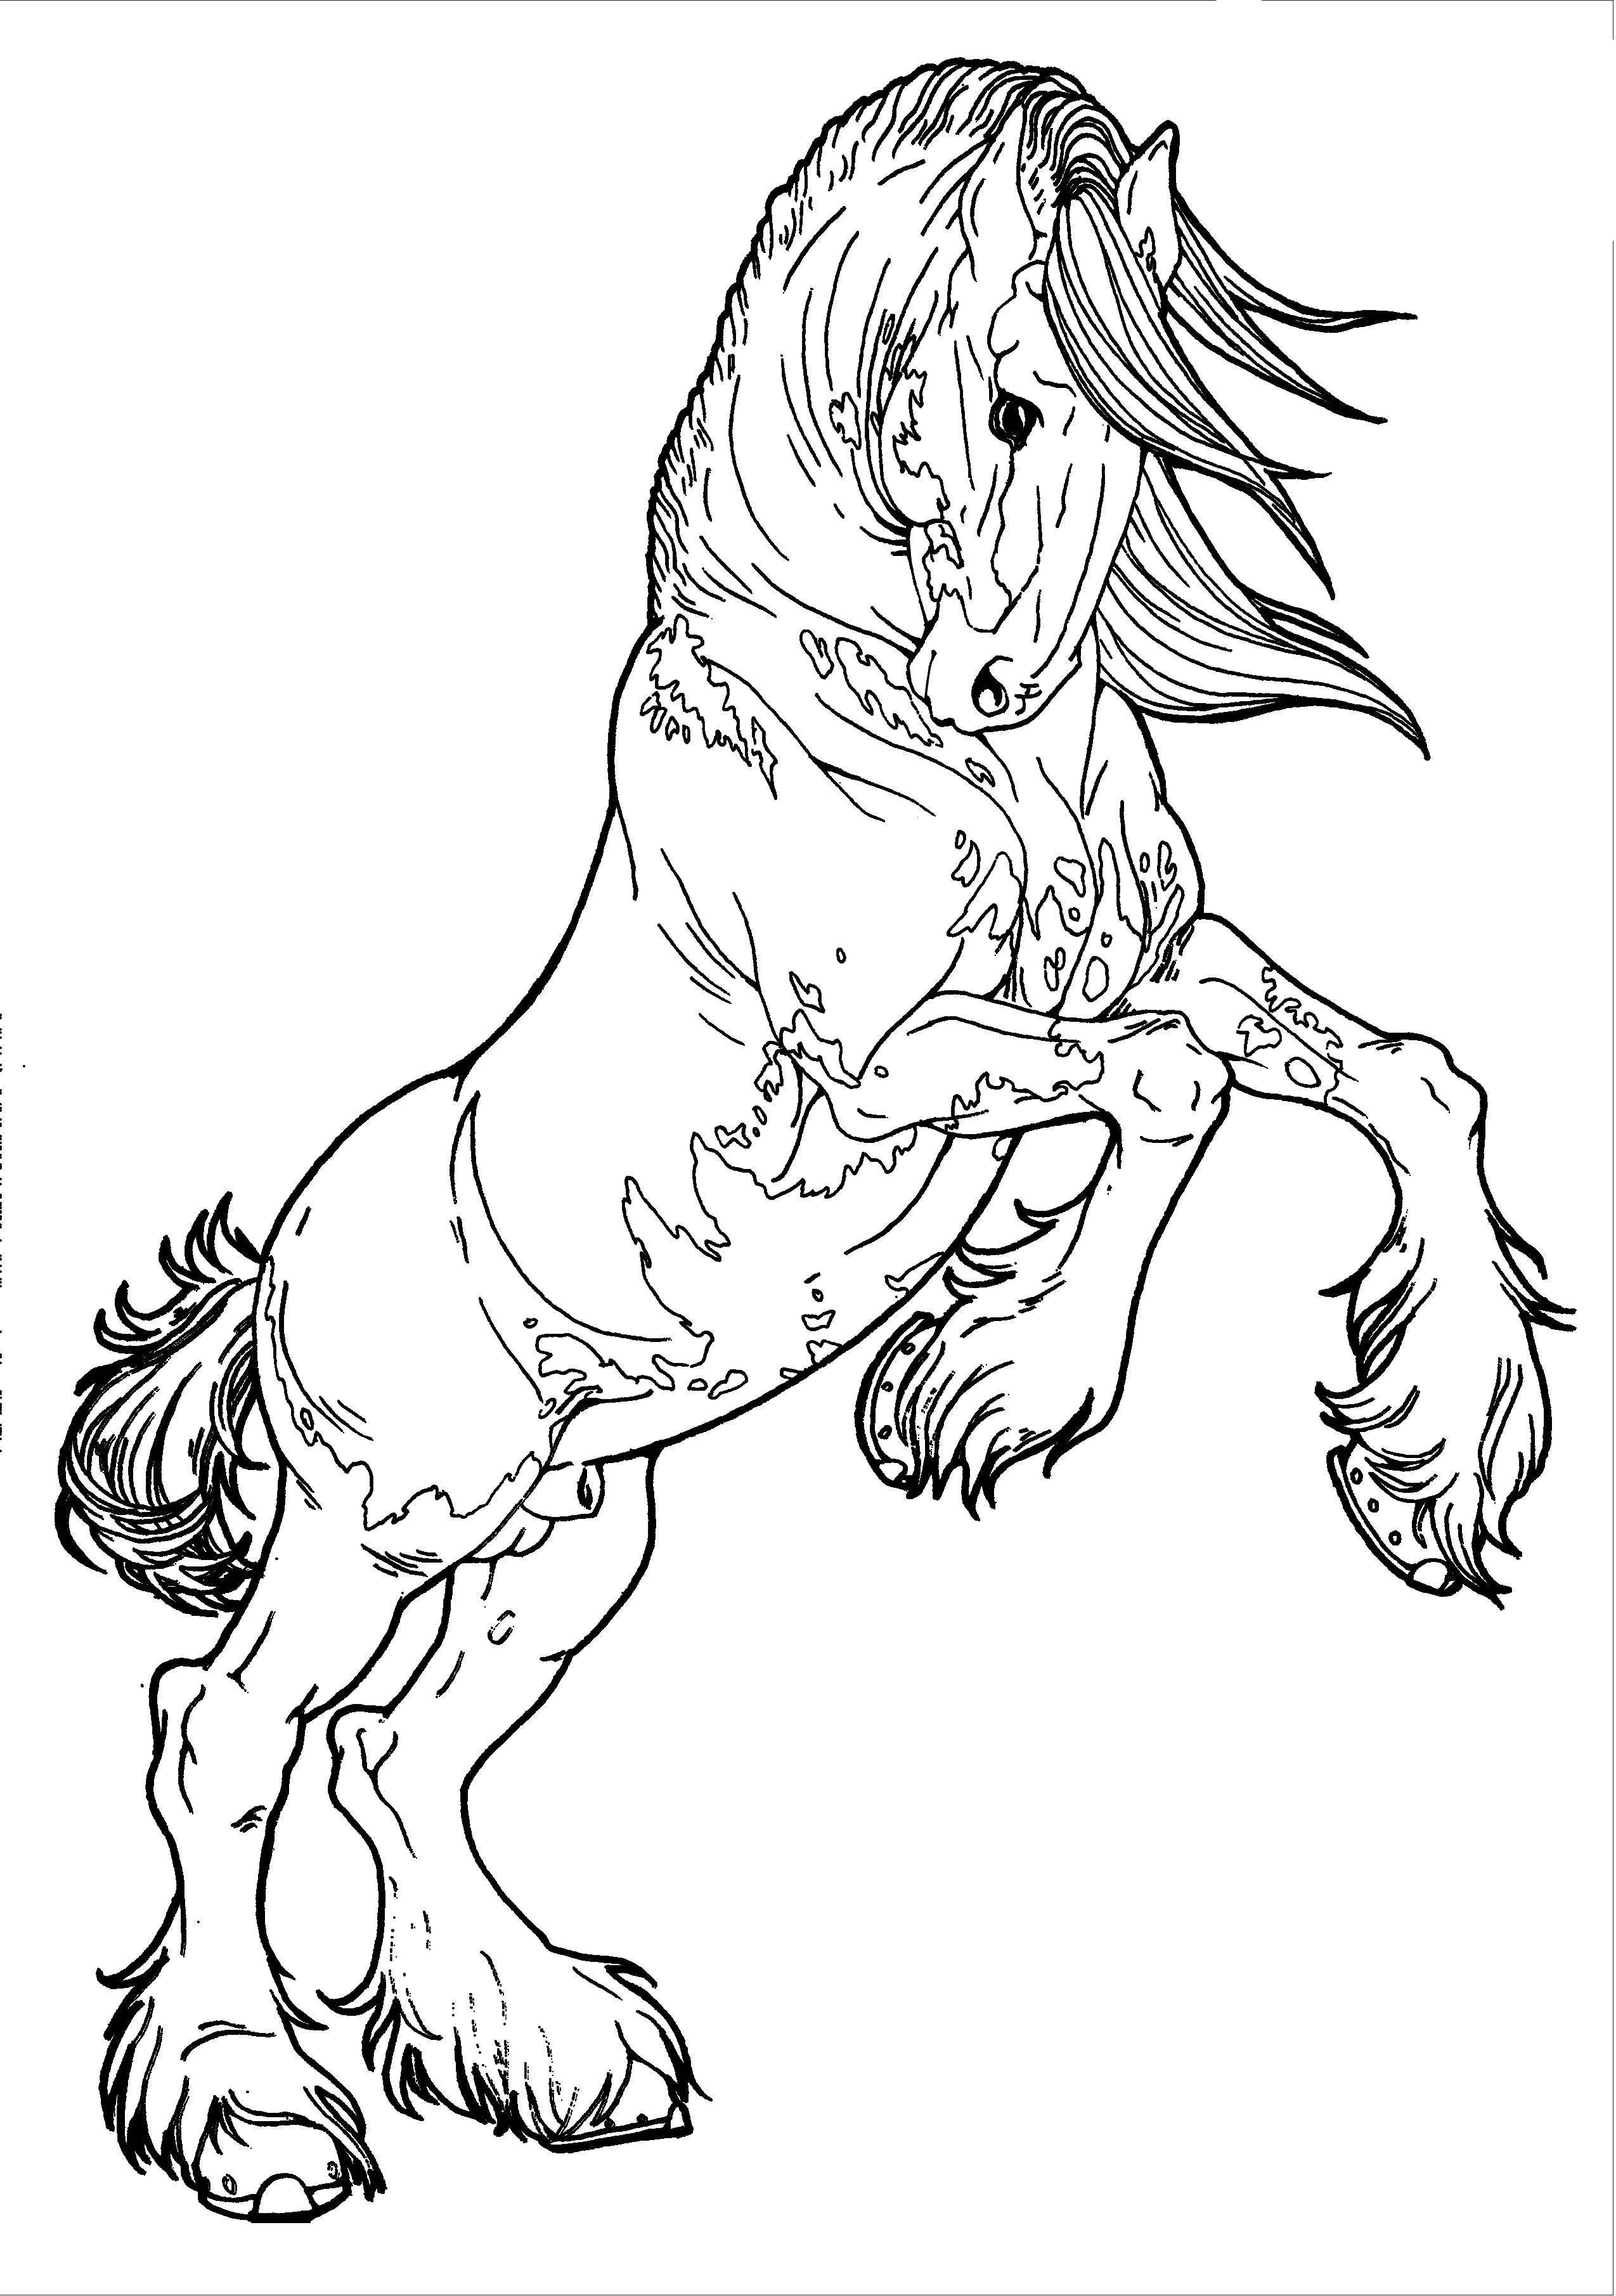 gypsy vanner horse coloring pages gypsy vanner horse coloring pages coloring pages coloring horse gypsy vanner pages